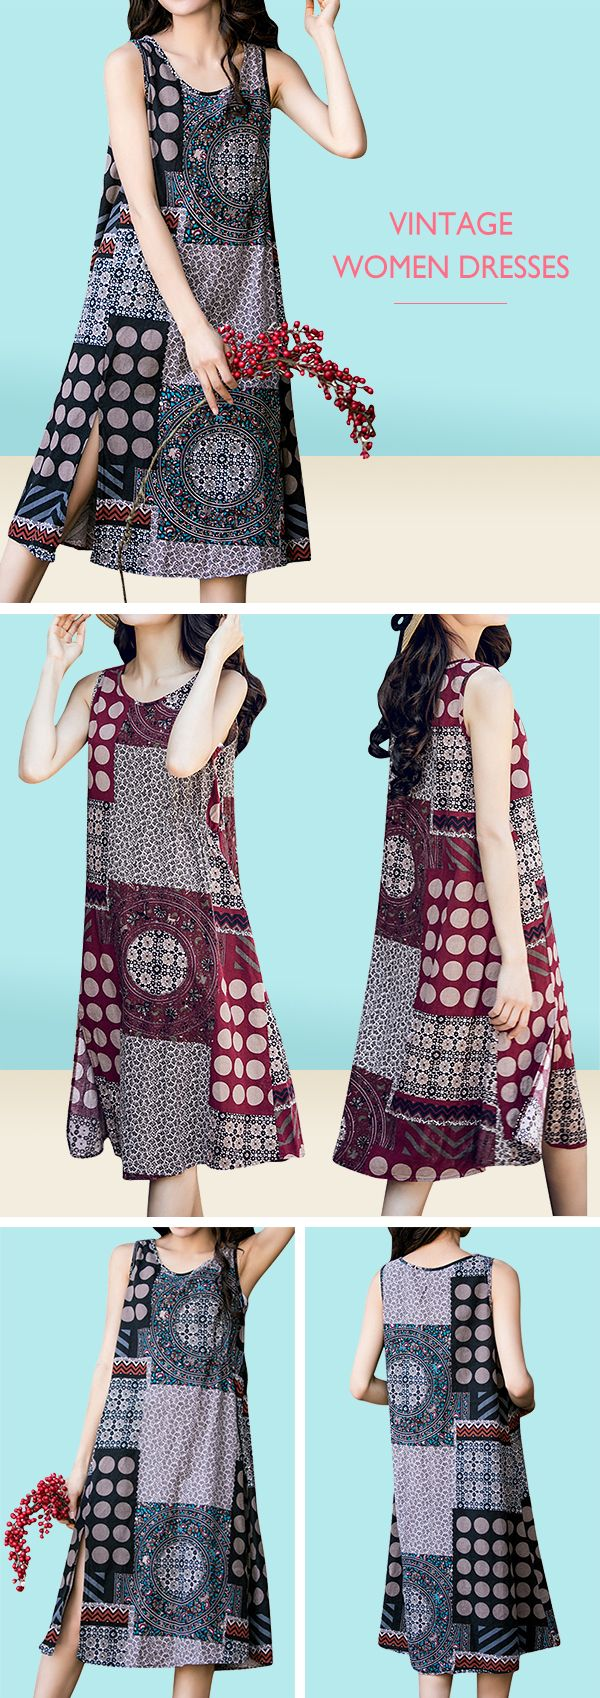 US$ 17.96 Ethnic Printed Sleeveless Vintage Women Dresses